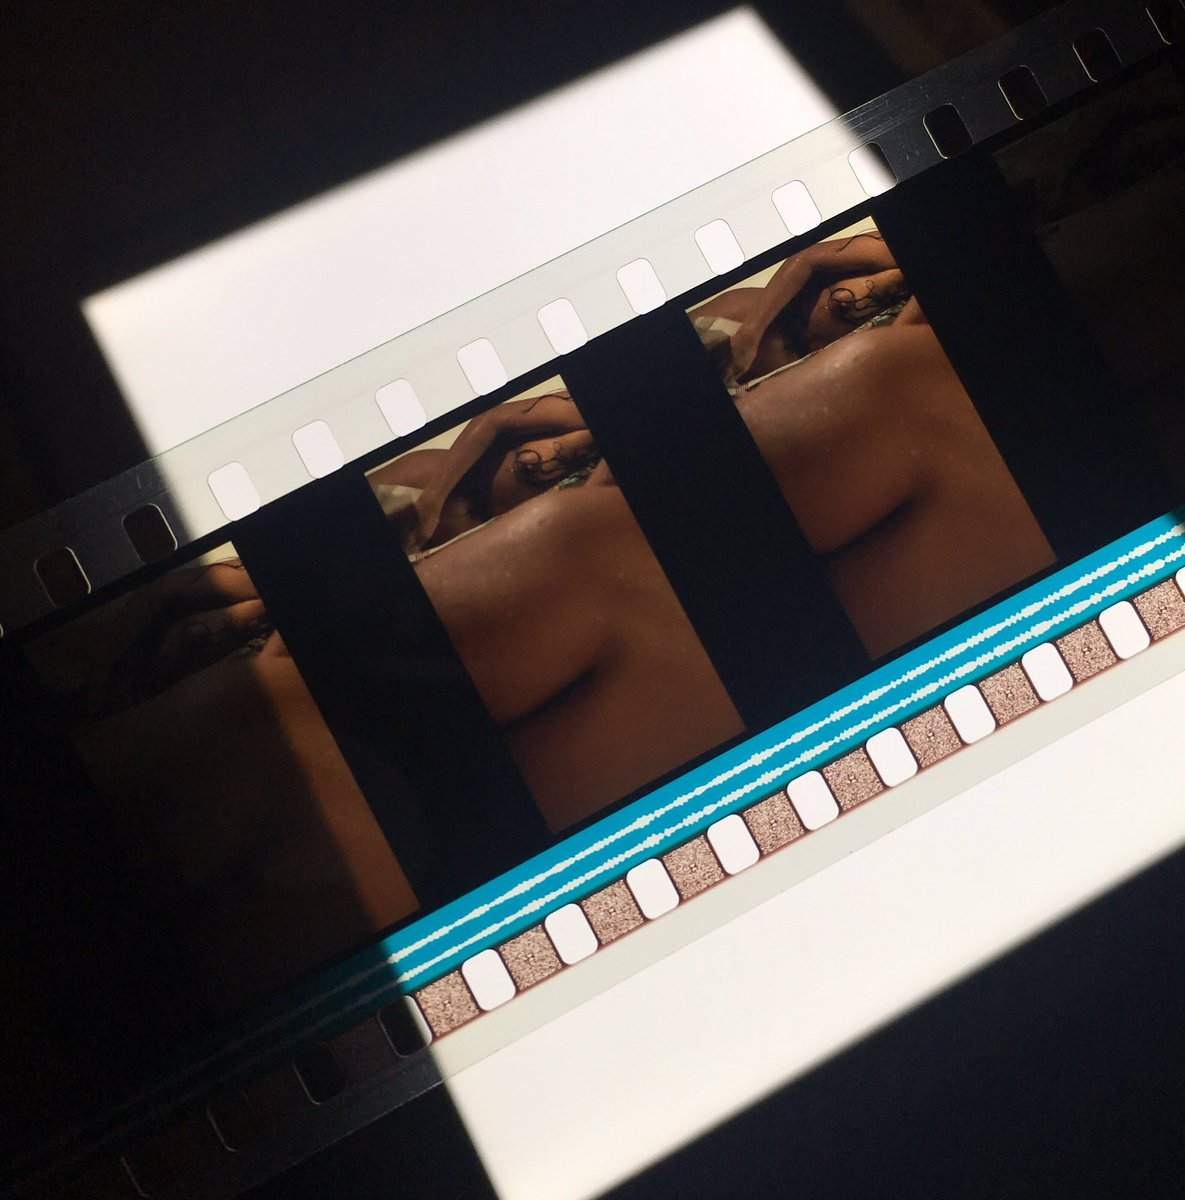 Get your butt in a seat! 16mm screenings on Saturday &amp; Wednesday @enjoythefilms, Agnes Varda's DAGUERREOTYPES on 16mm at Comfort Station, THE OTHER SIDE OF THE WIND [pictured] on 35mm at the Gene Siskel Film Center and more! Full list:  https://www. celluloidchicago.org / &nbsp;   <br>http://pic.twitter.com/Smnx8V1eps